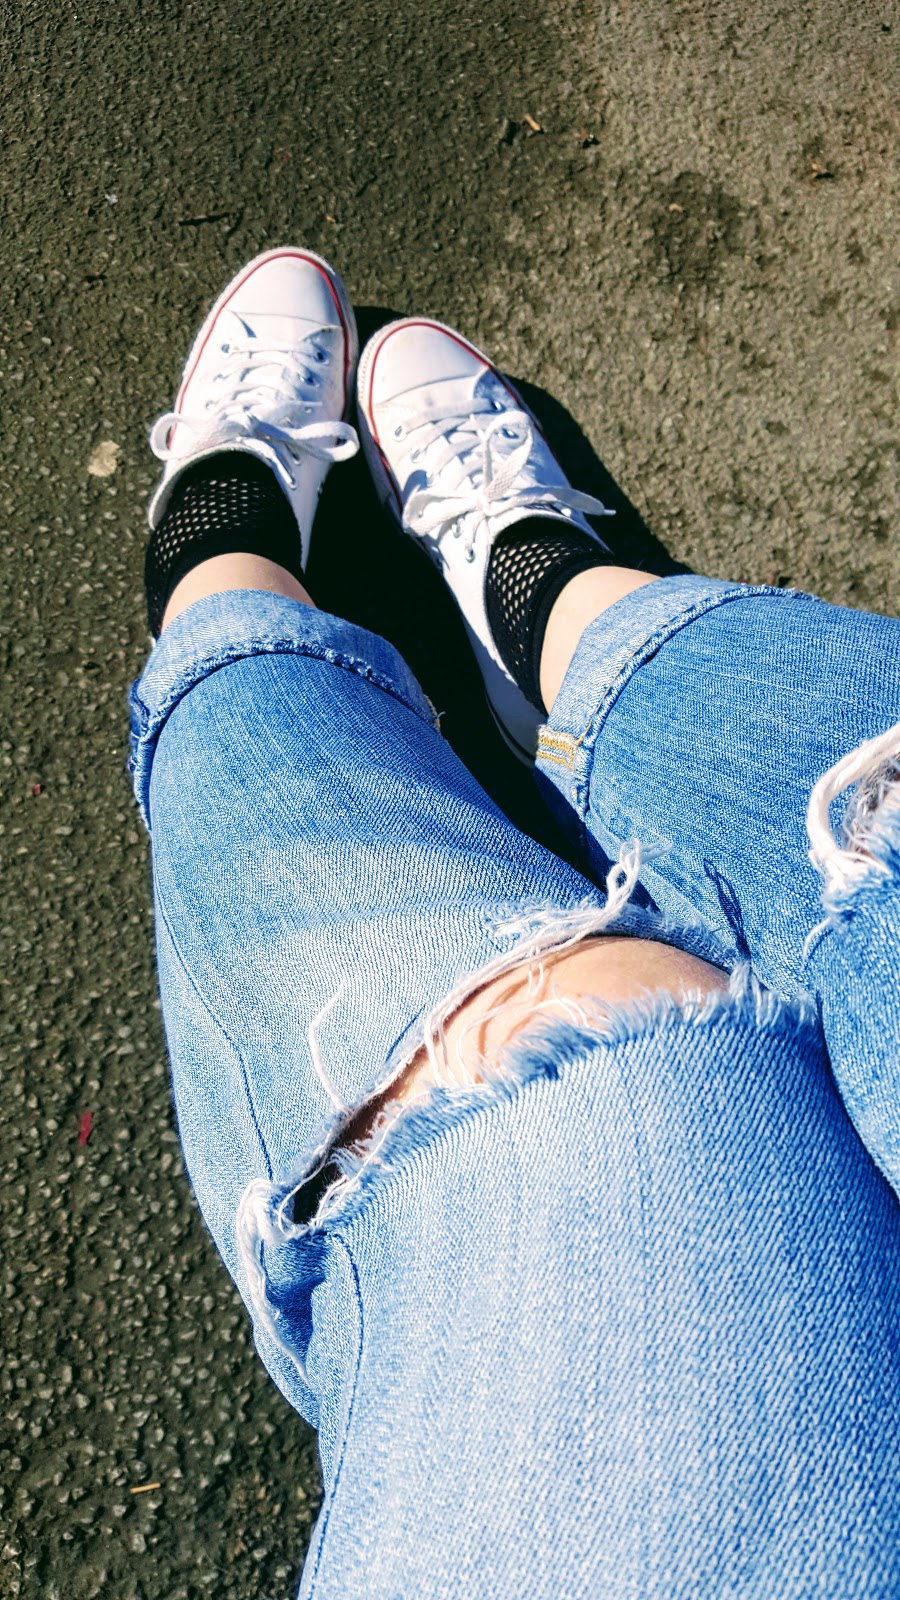 Ripped Jeans Over 40 fashion blogger